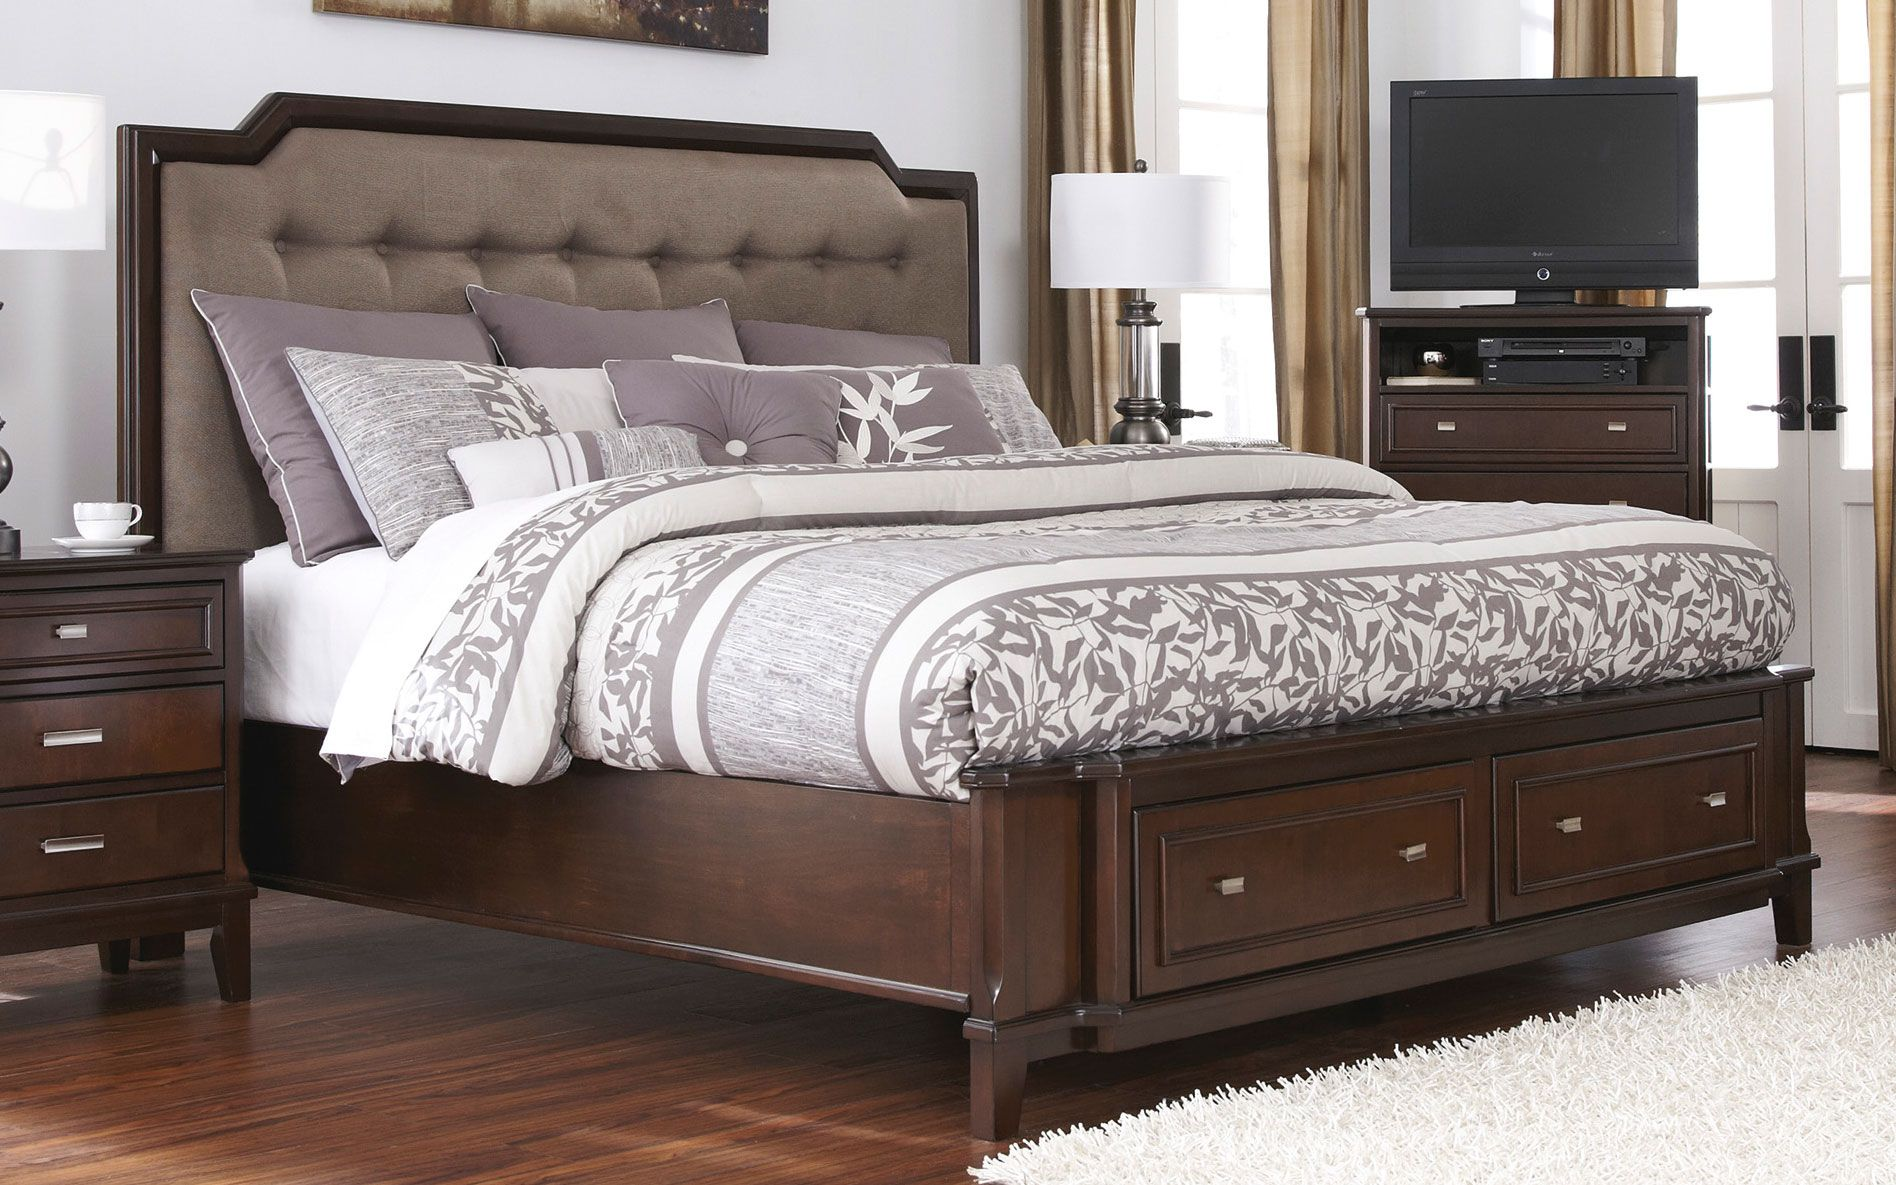 King Size Headboard Ideas With Headboard Ideas Design A King Size